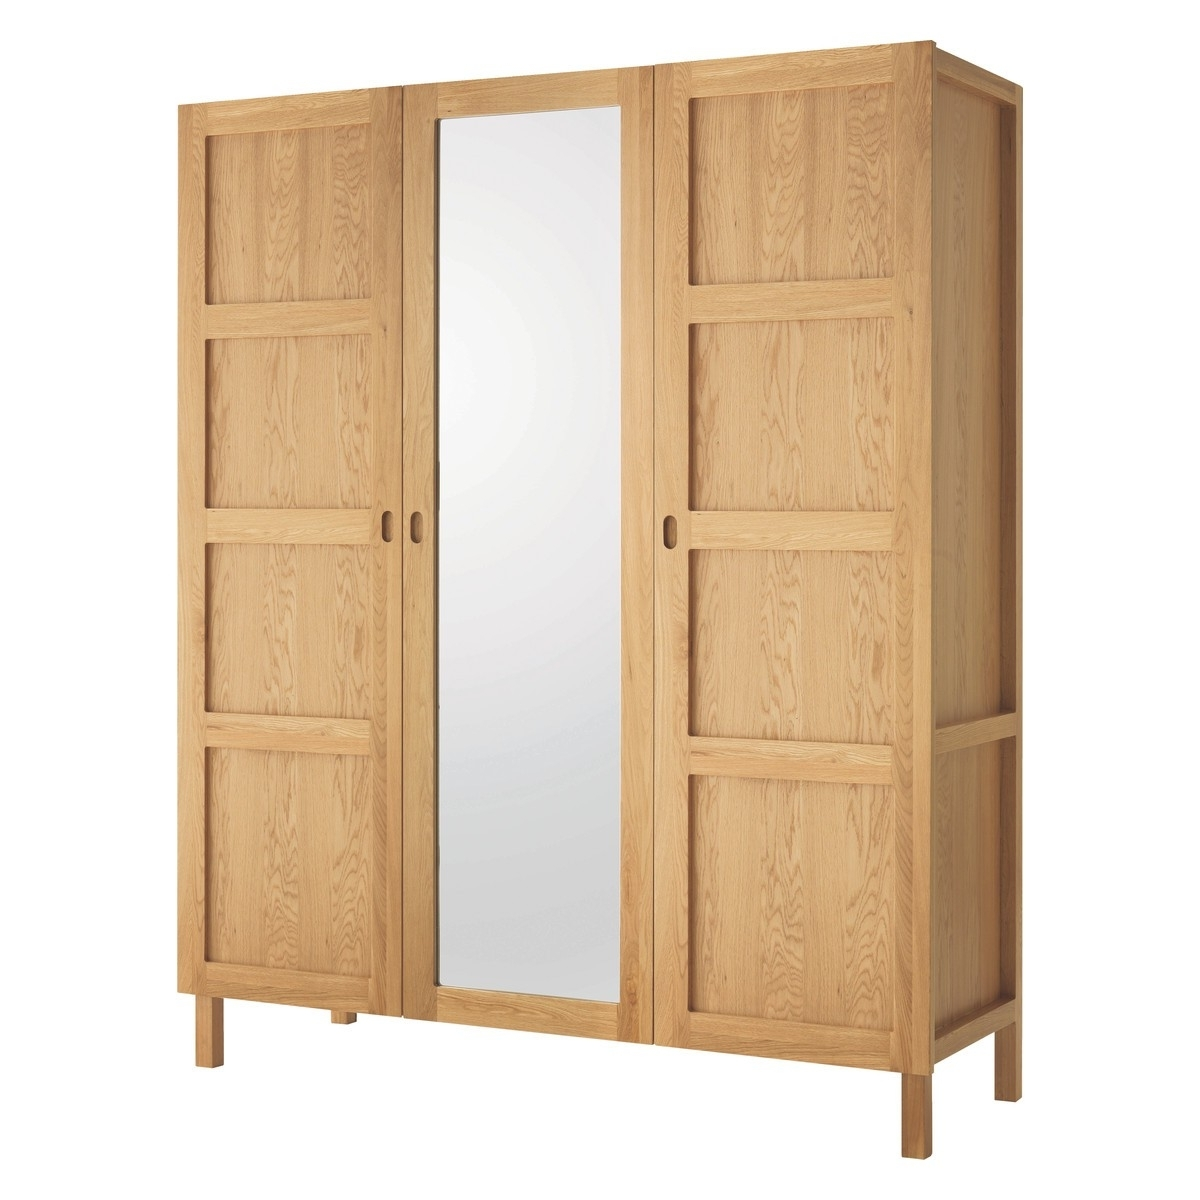 Buy Now At Inside Cheap 3 Door Wardrobes (View 14 of 15)